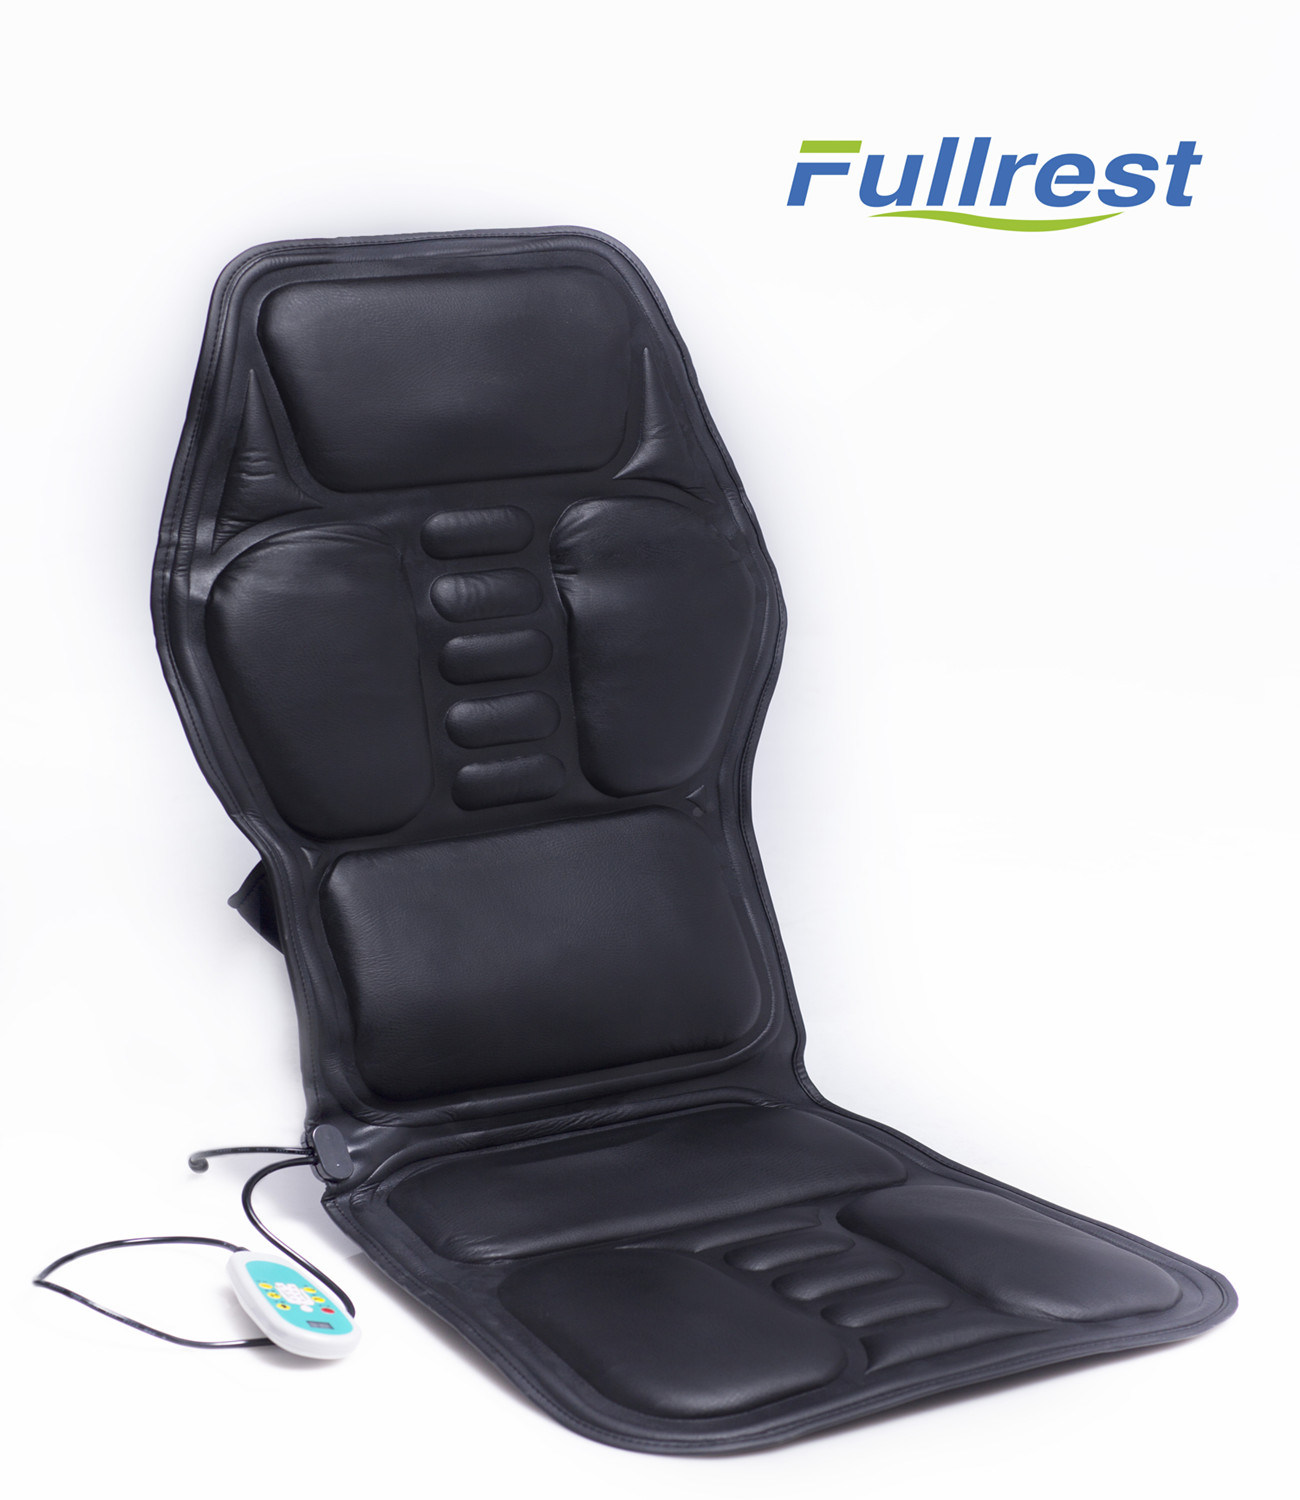 Shiatsu Back and Bottom Massage Cushion